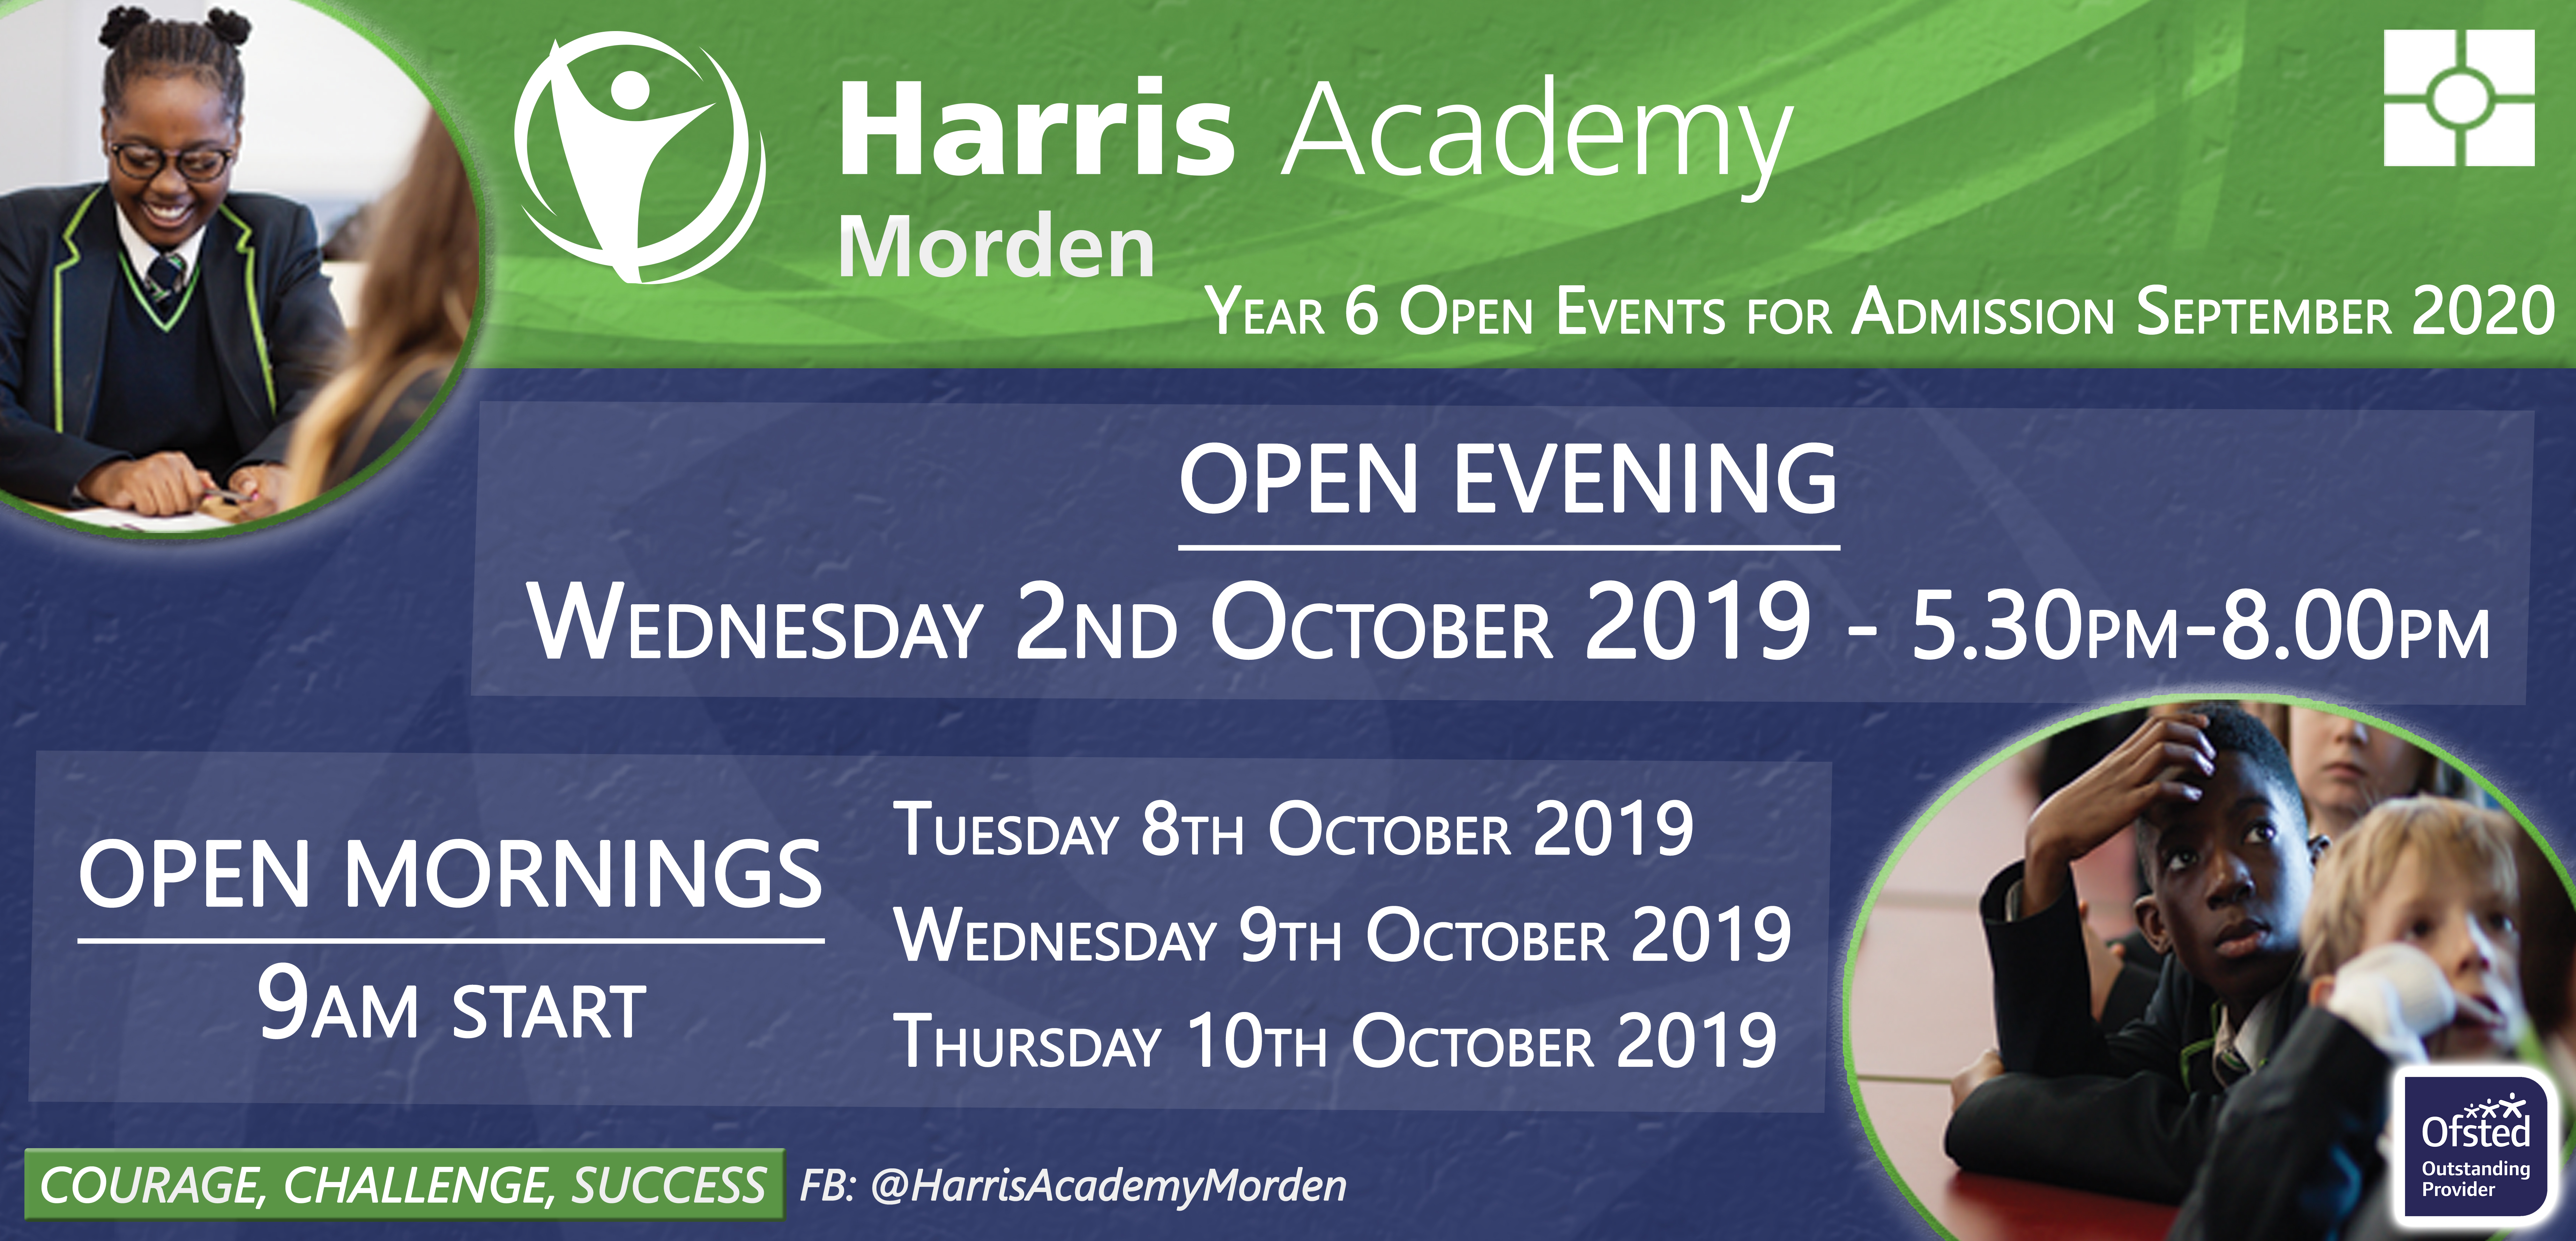 Open evening web banner